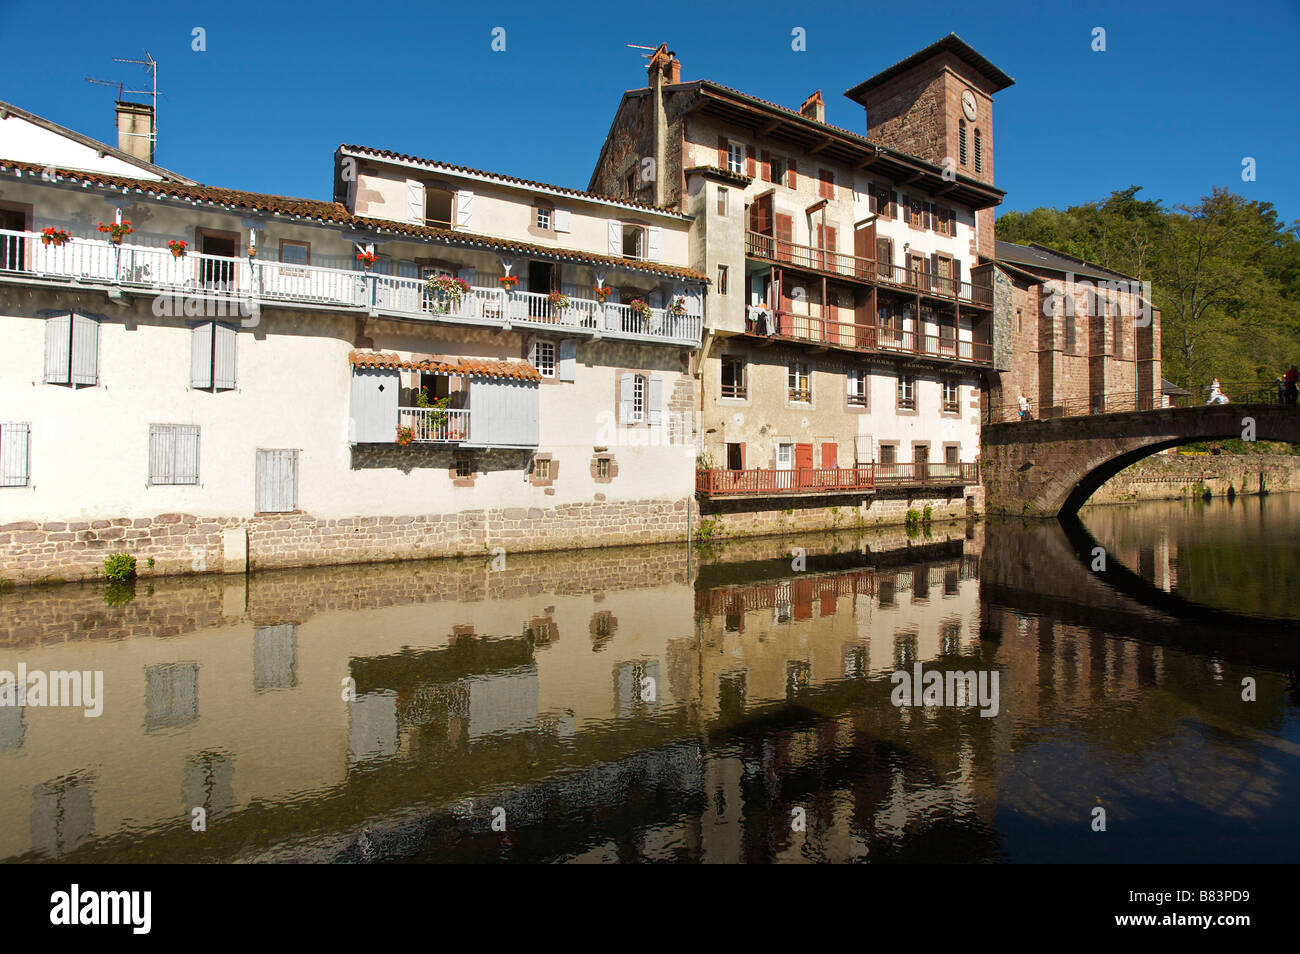 Saint Jean Pied De Port Saint Jean Pied De Port Stock Photos Saint Jean Pied De Port